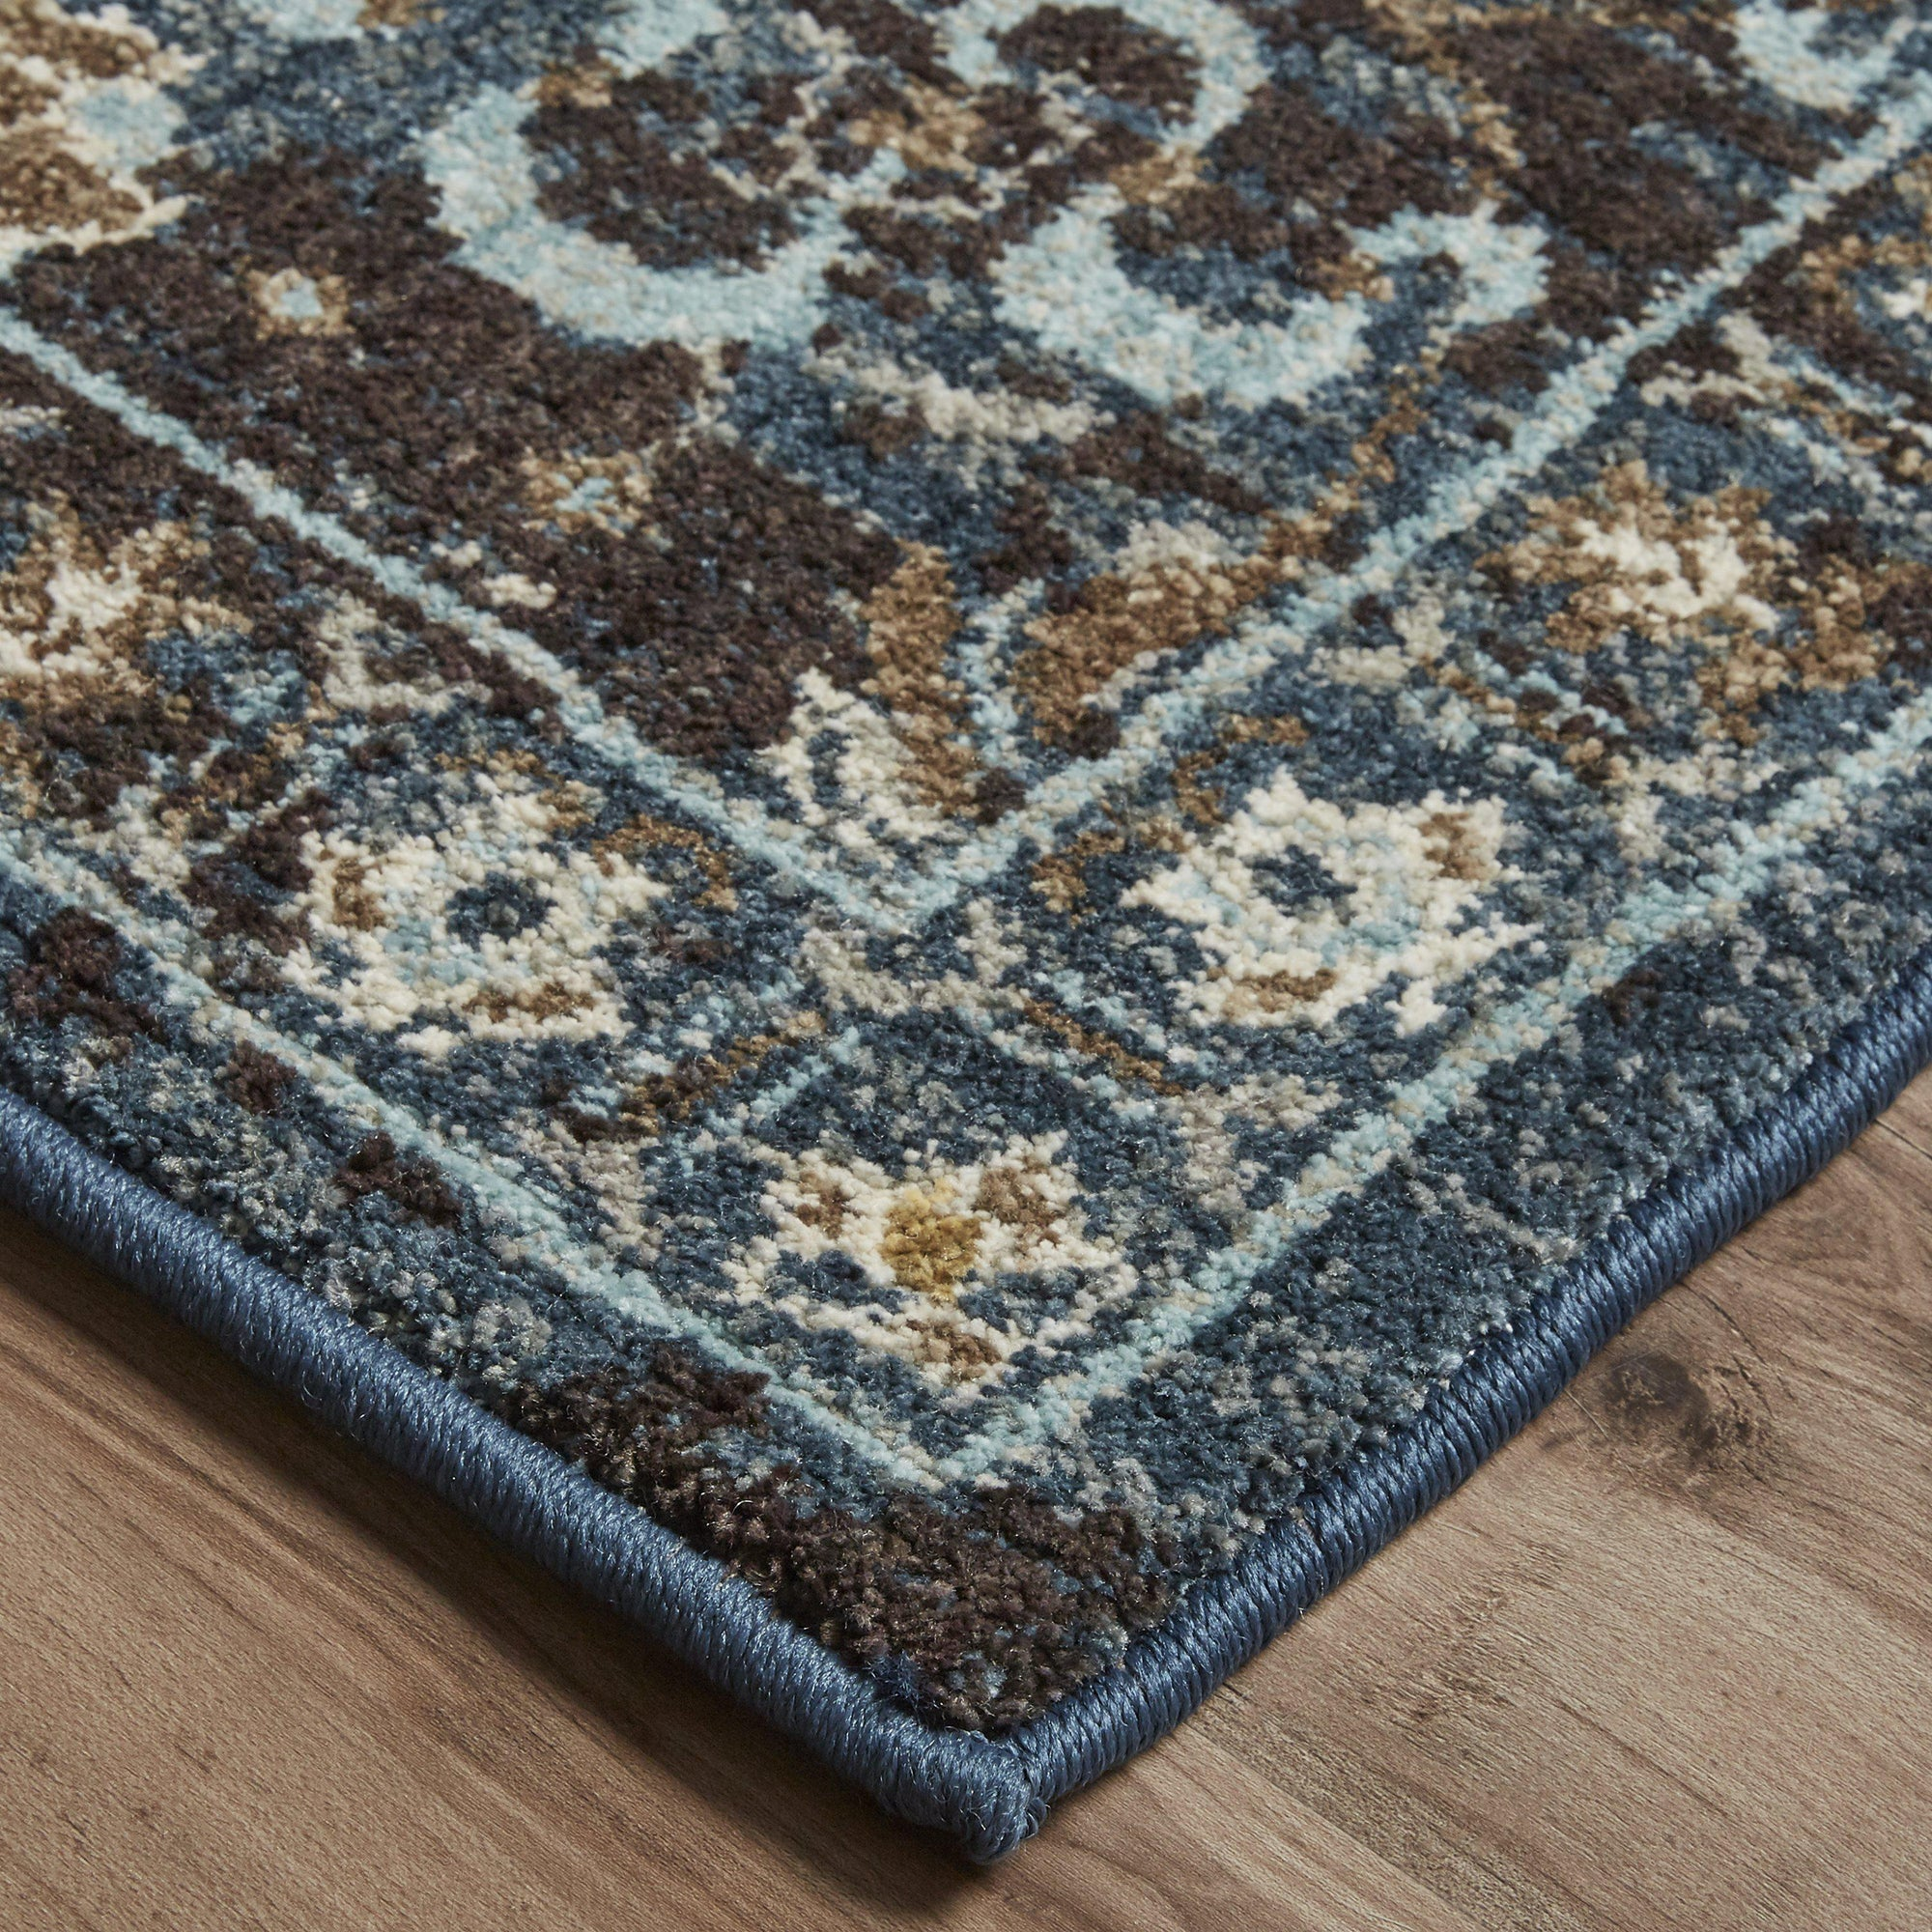 Karastan Touchstone Deveron Blue Teal-Area Rug-Karastan-2'x3'-The Rug Truck